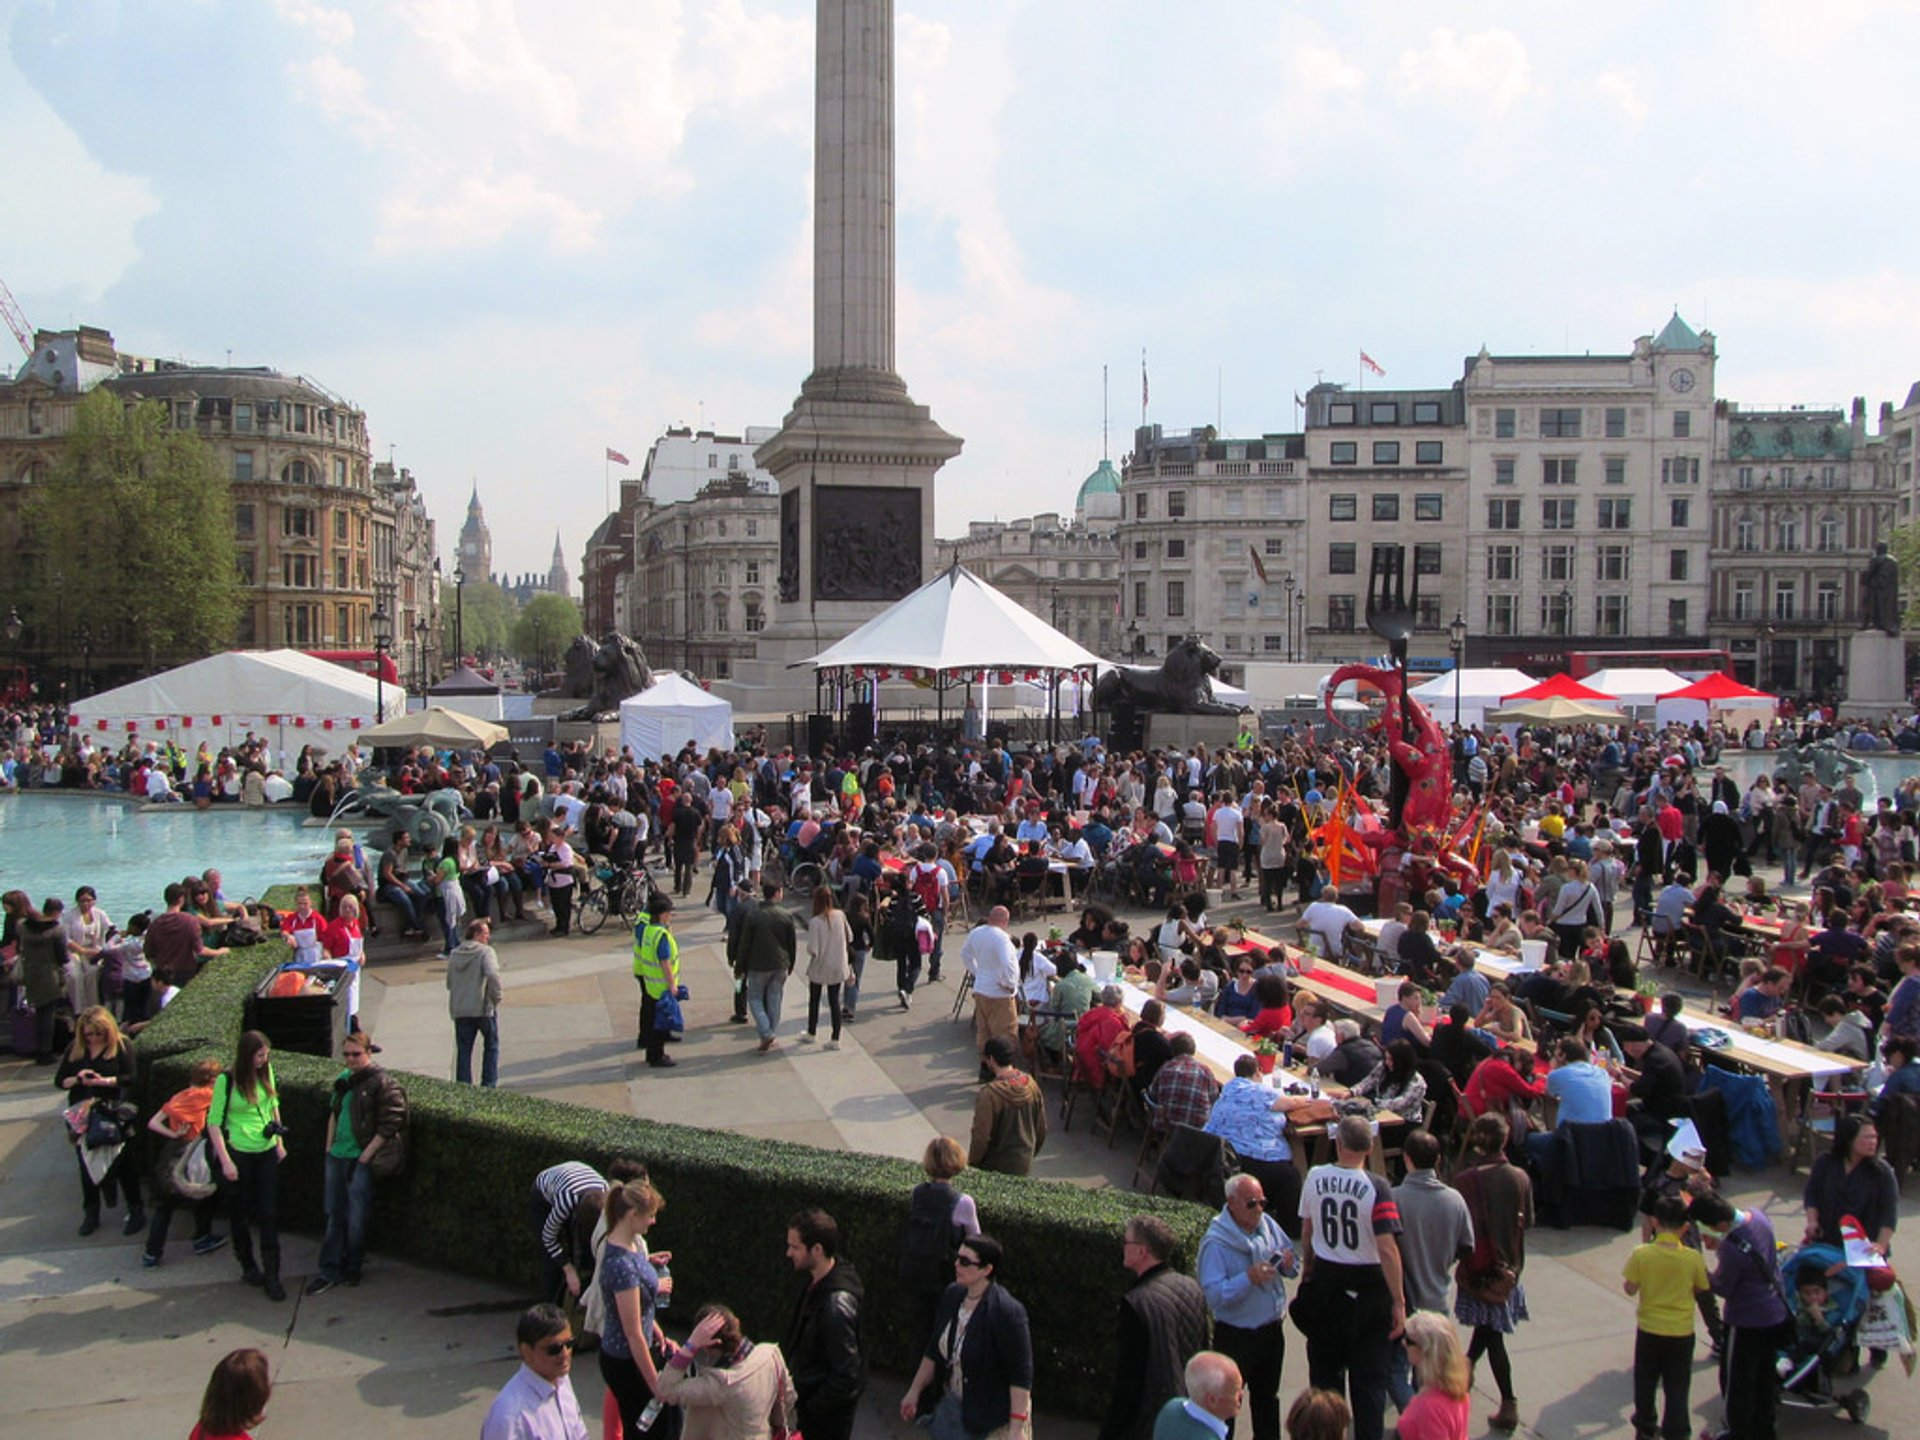 Best time for Feast of St George in Trafalgar Square in London 2020